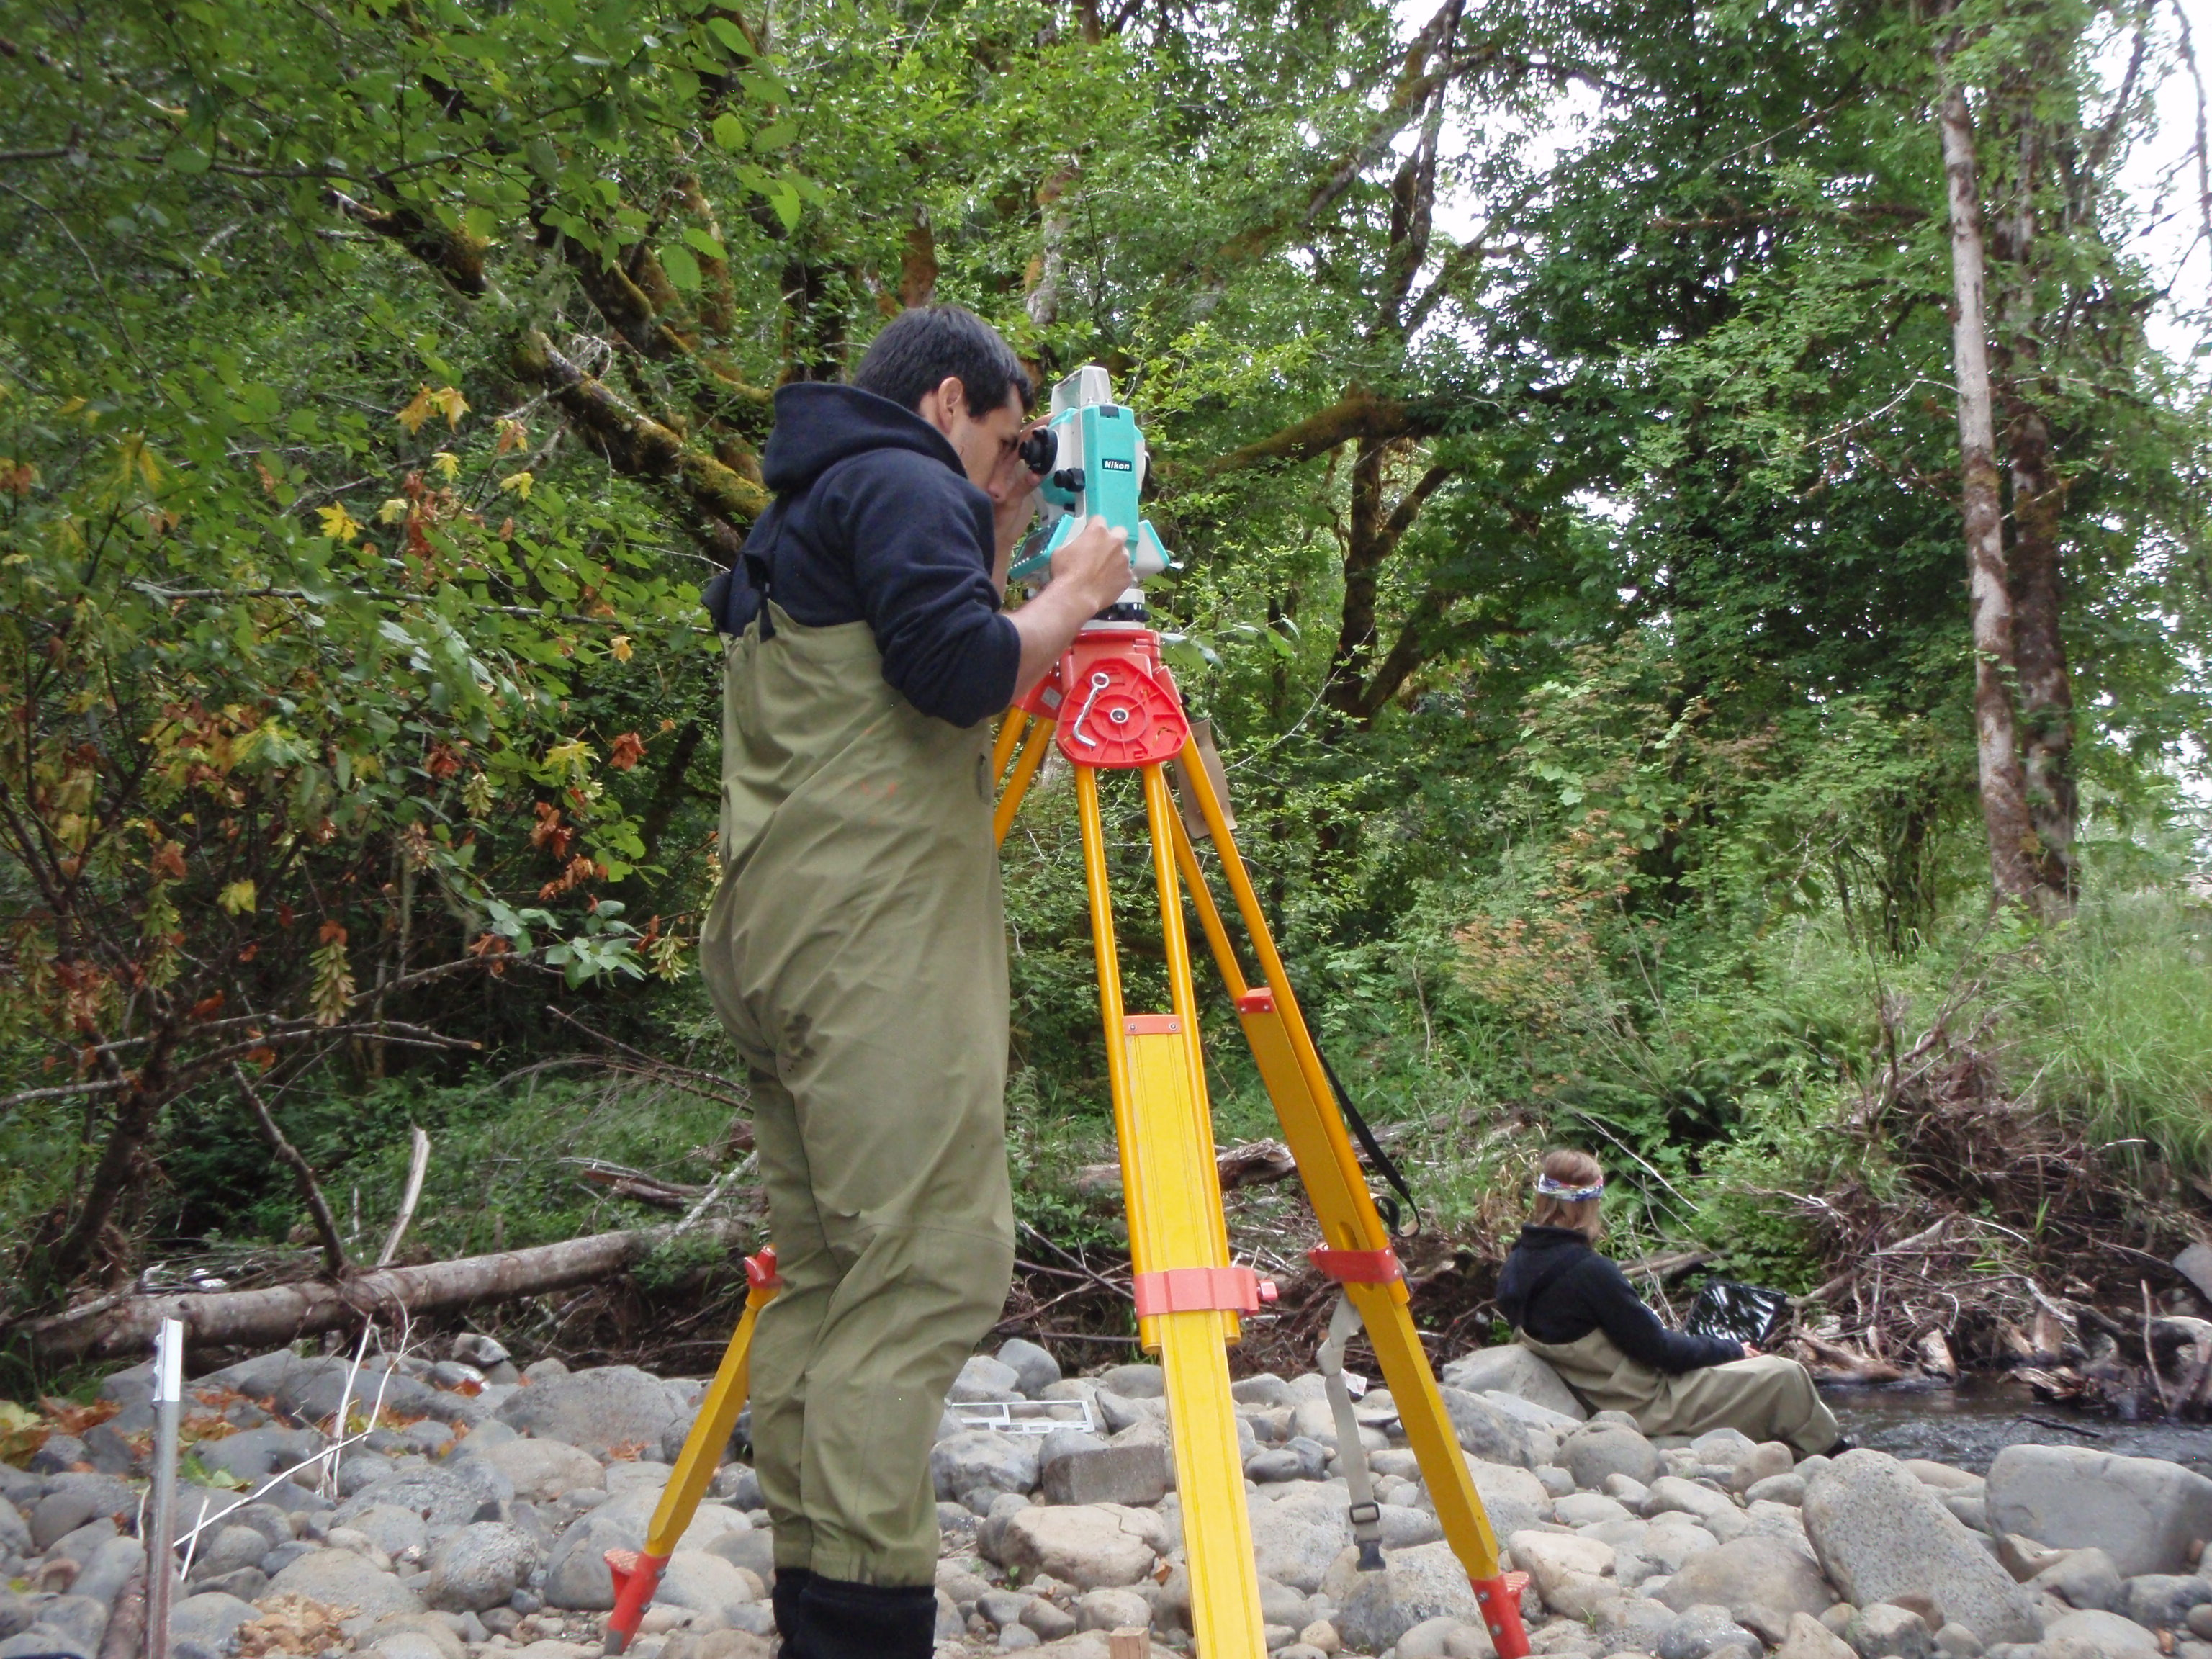 Surveying with a total station